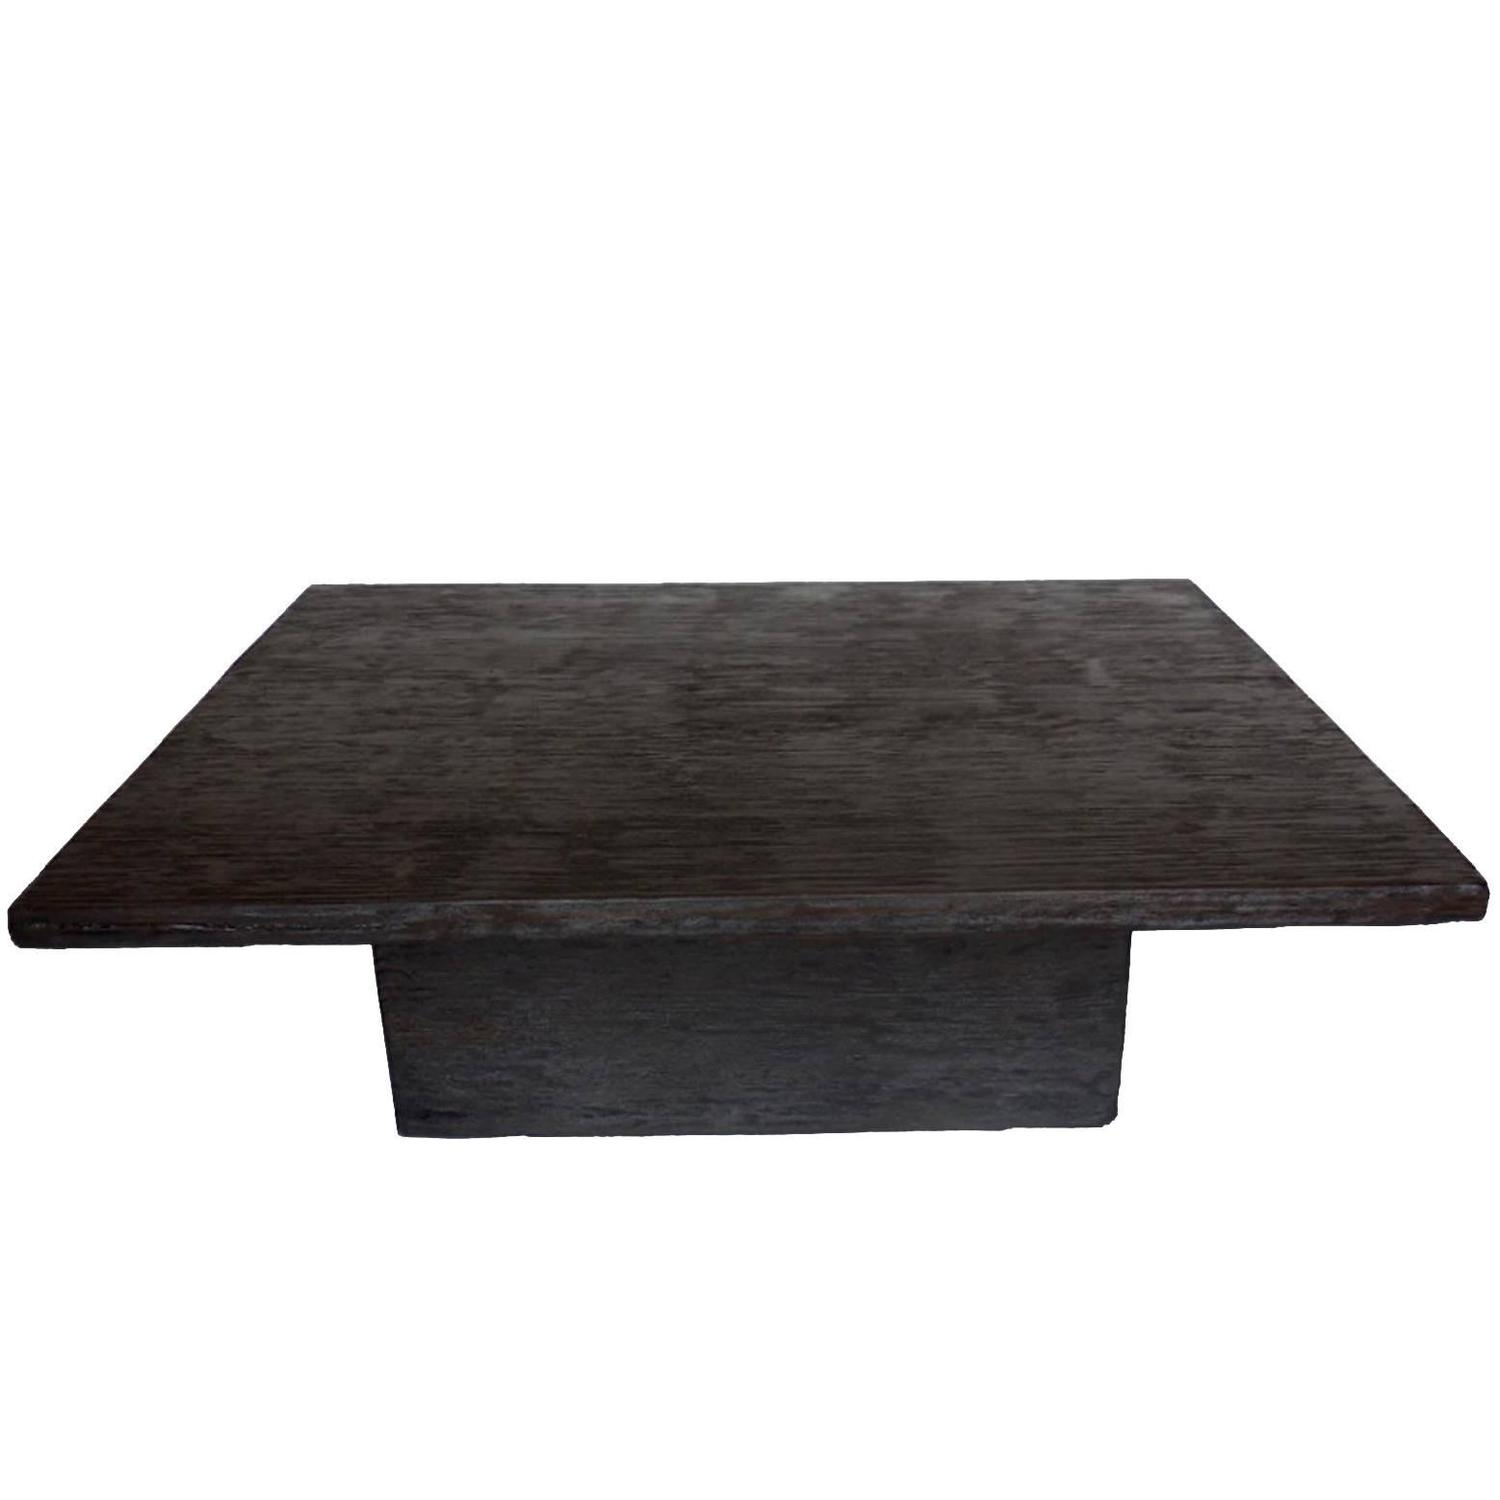 "Clifton Road"" Mahogany Coffee Table by Terry Hunziker in Espresso"